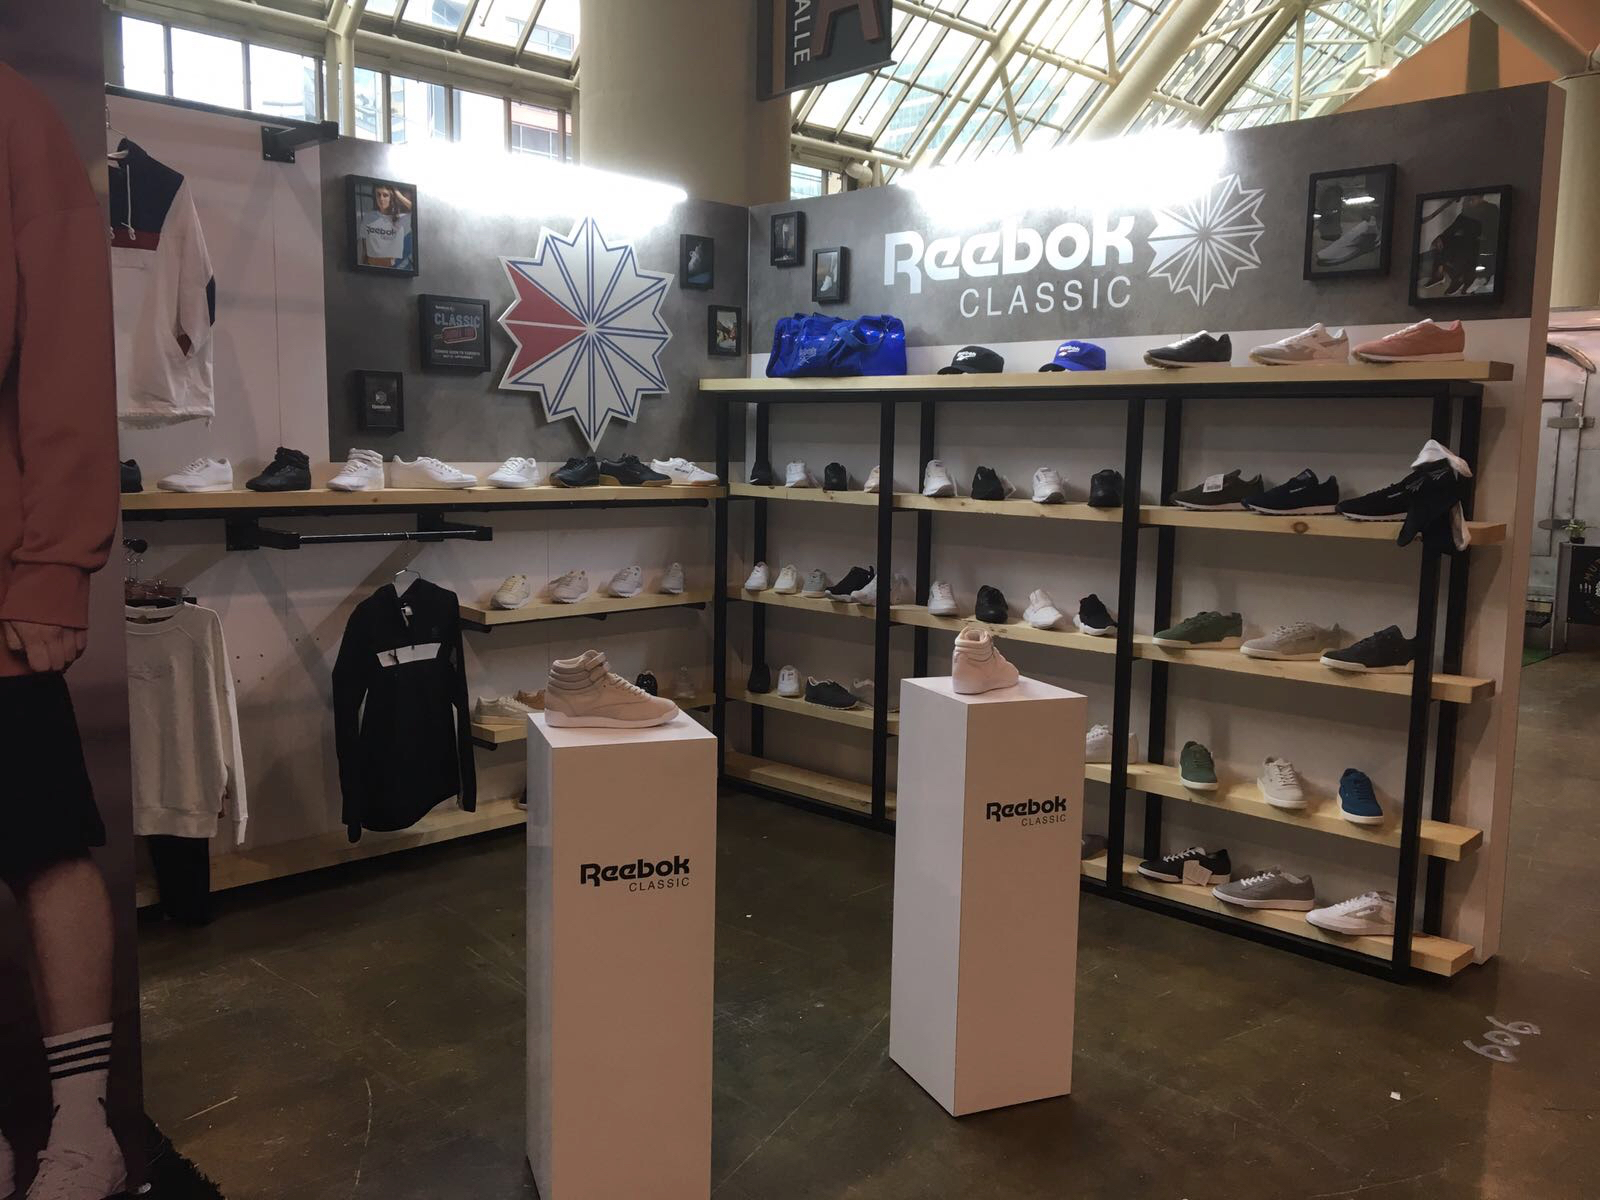 Park Creative Agency - KnowShow - Reebok Classics - Booth Design.jpg